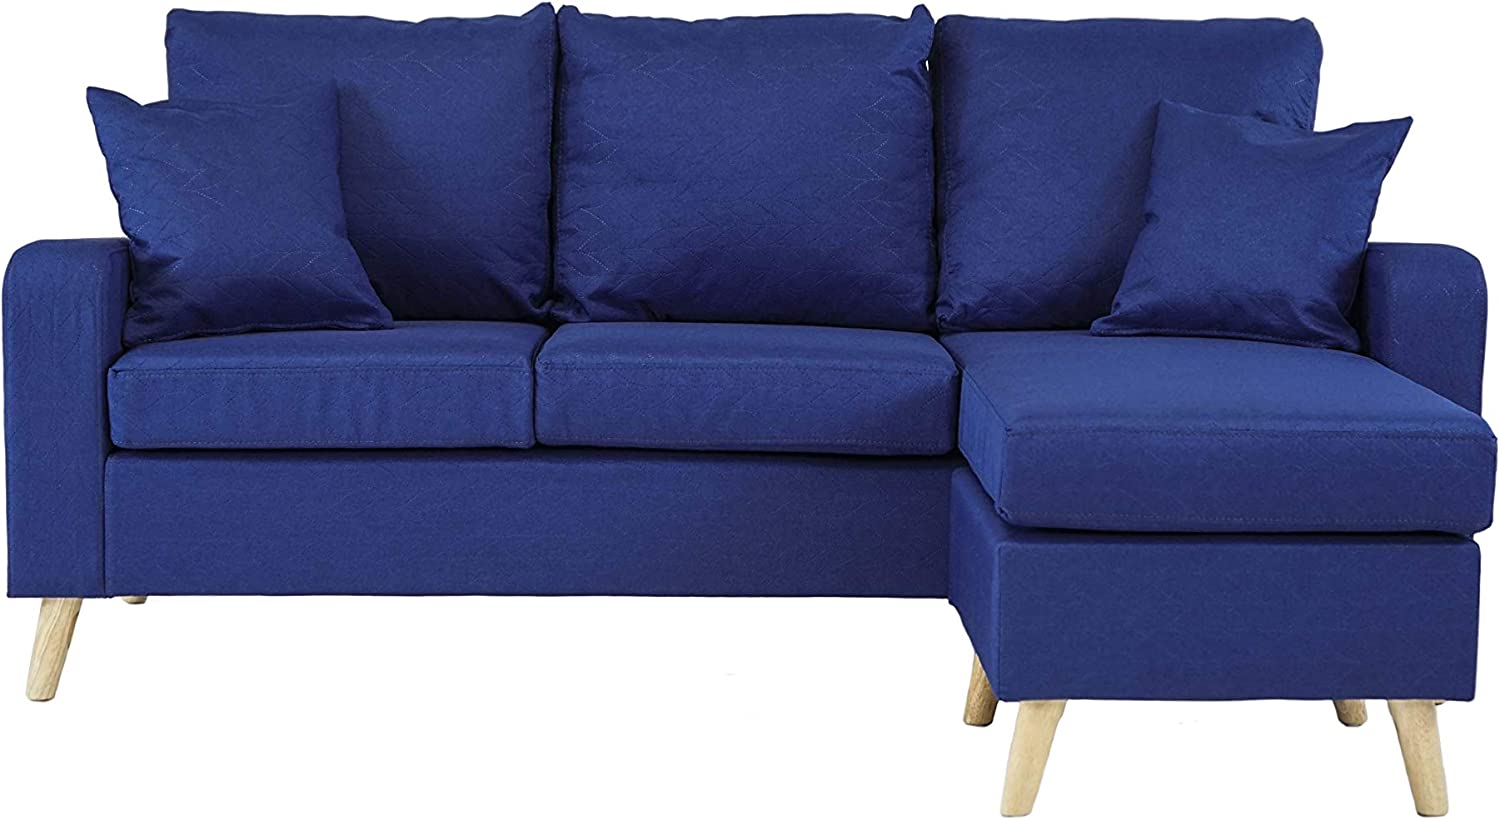 Divano Roma Furniture Middle Century Modern Linen Fabric Small Space Sectional Sofa with Reversible Chaise (Sky Blue)